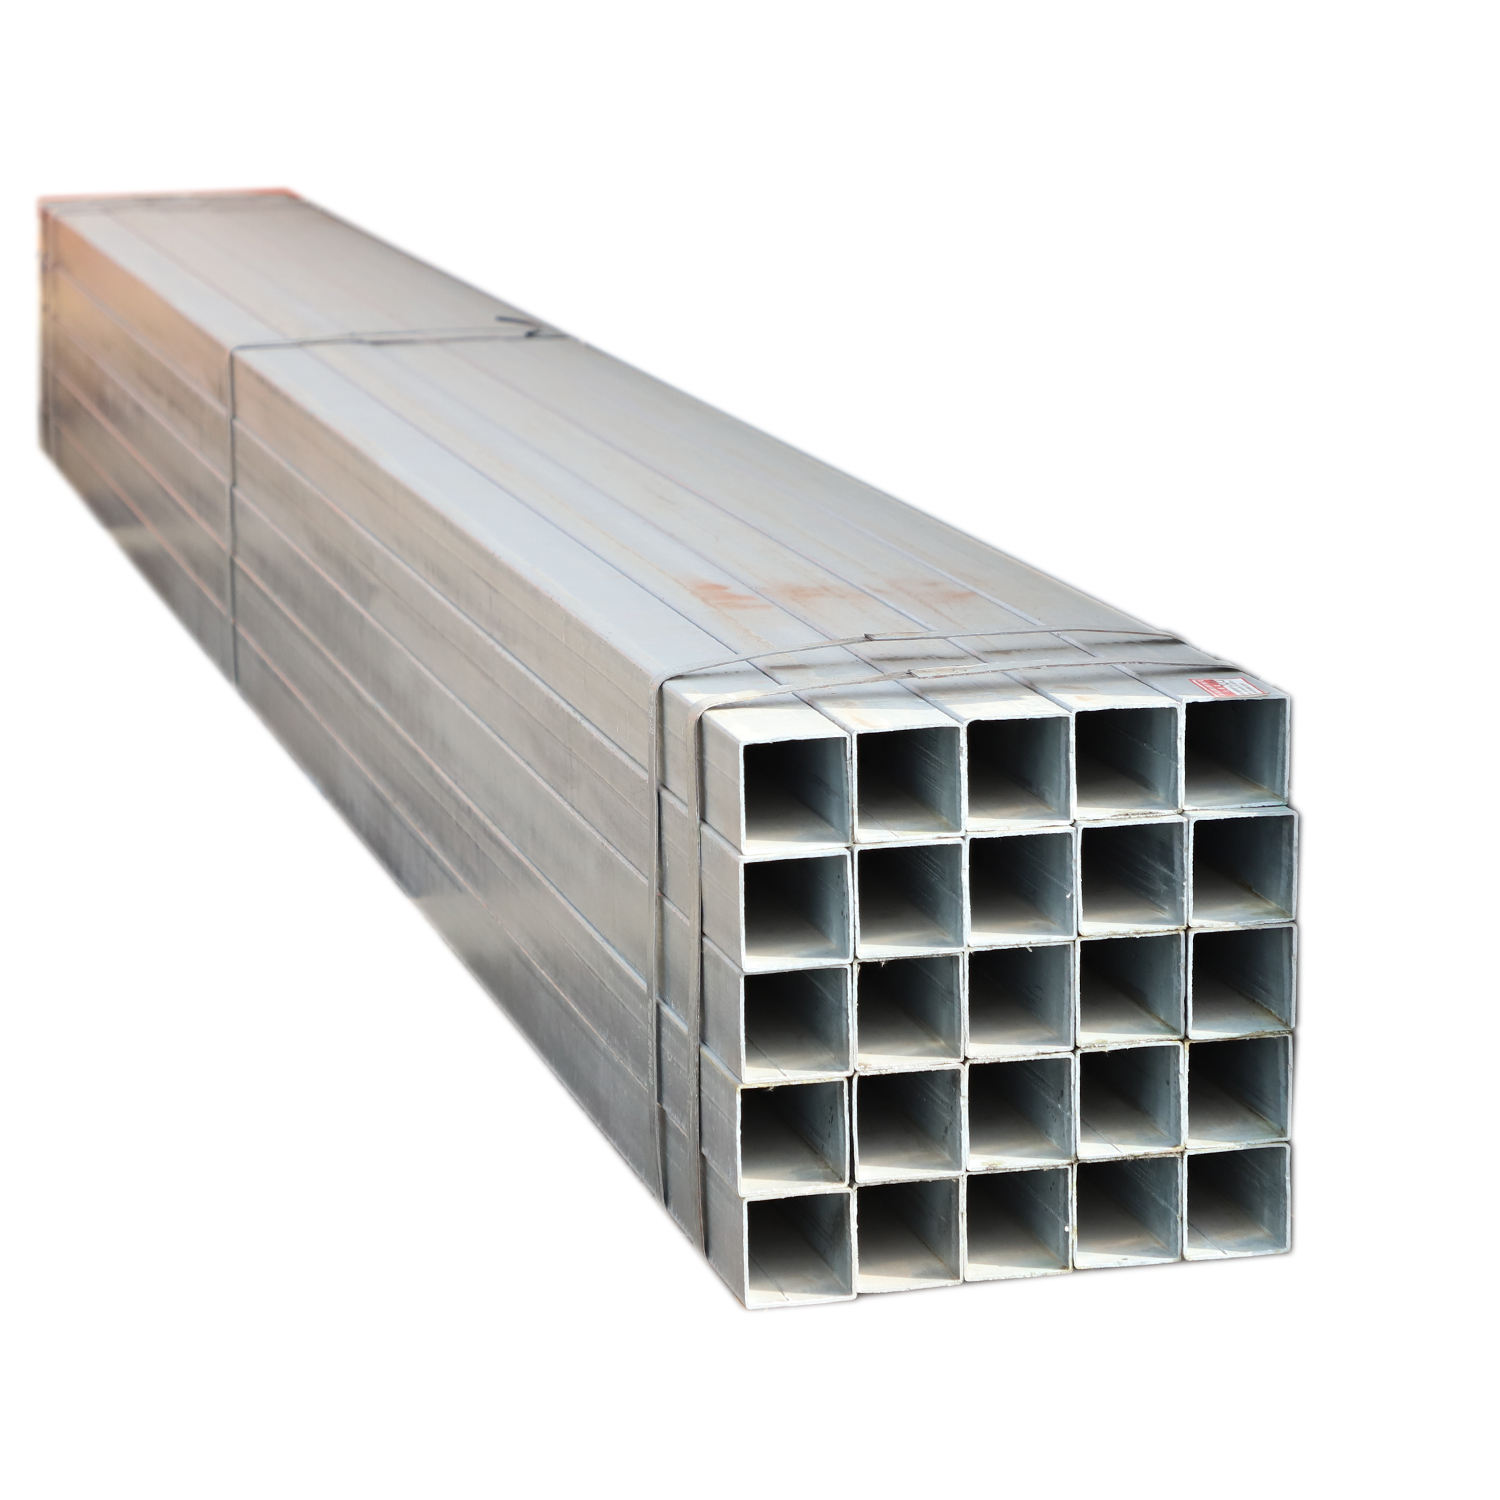 GB standard hot dipped galvanized steel pipe galvanized square /rectangular steel pipe/tube